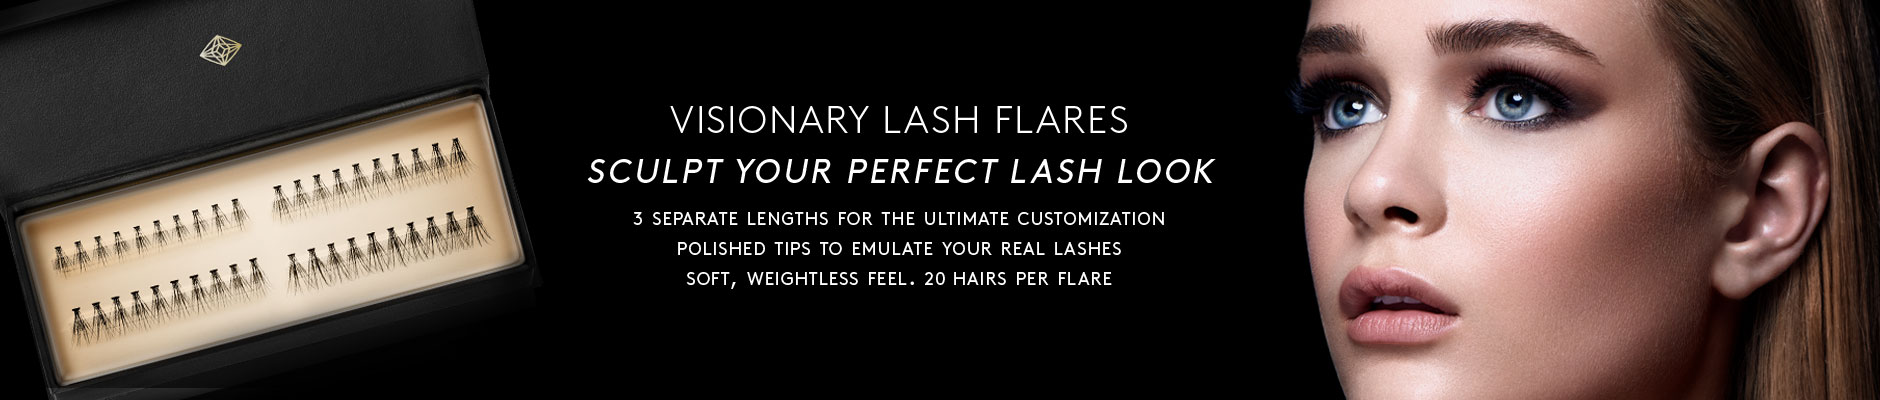 Visionary Lash Flares - Sculpt your perfect lash look